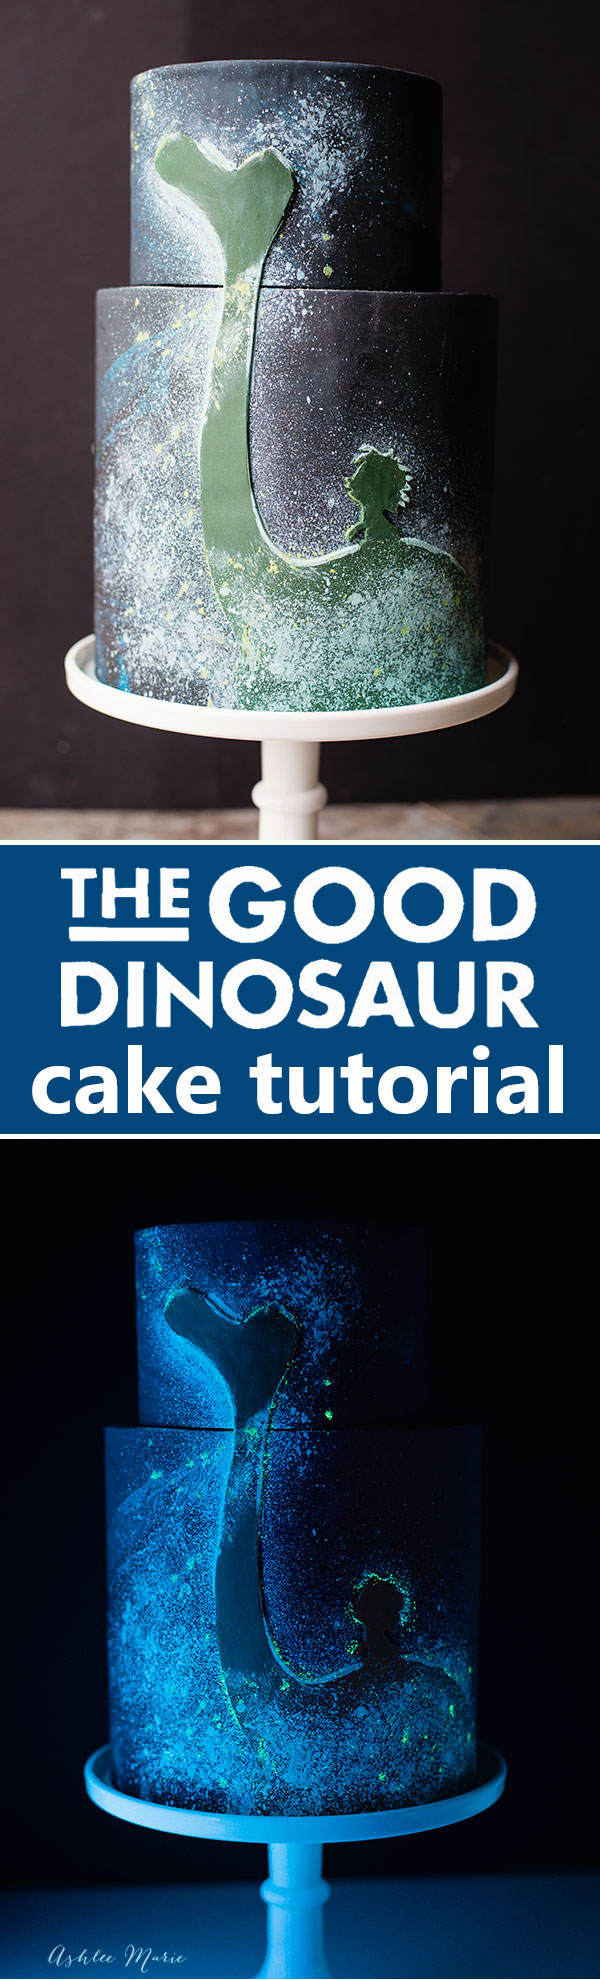 full video tutorial for making this glow in the dark cake for Disney's The Good Dinosaur and Fandango family